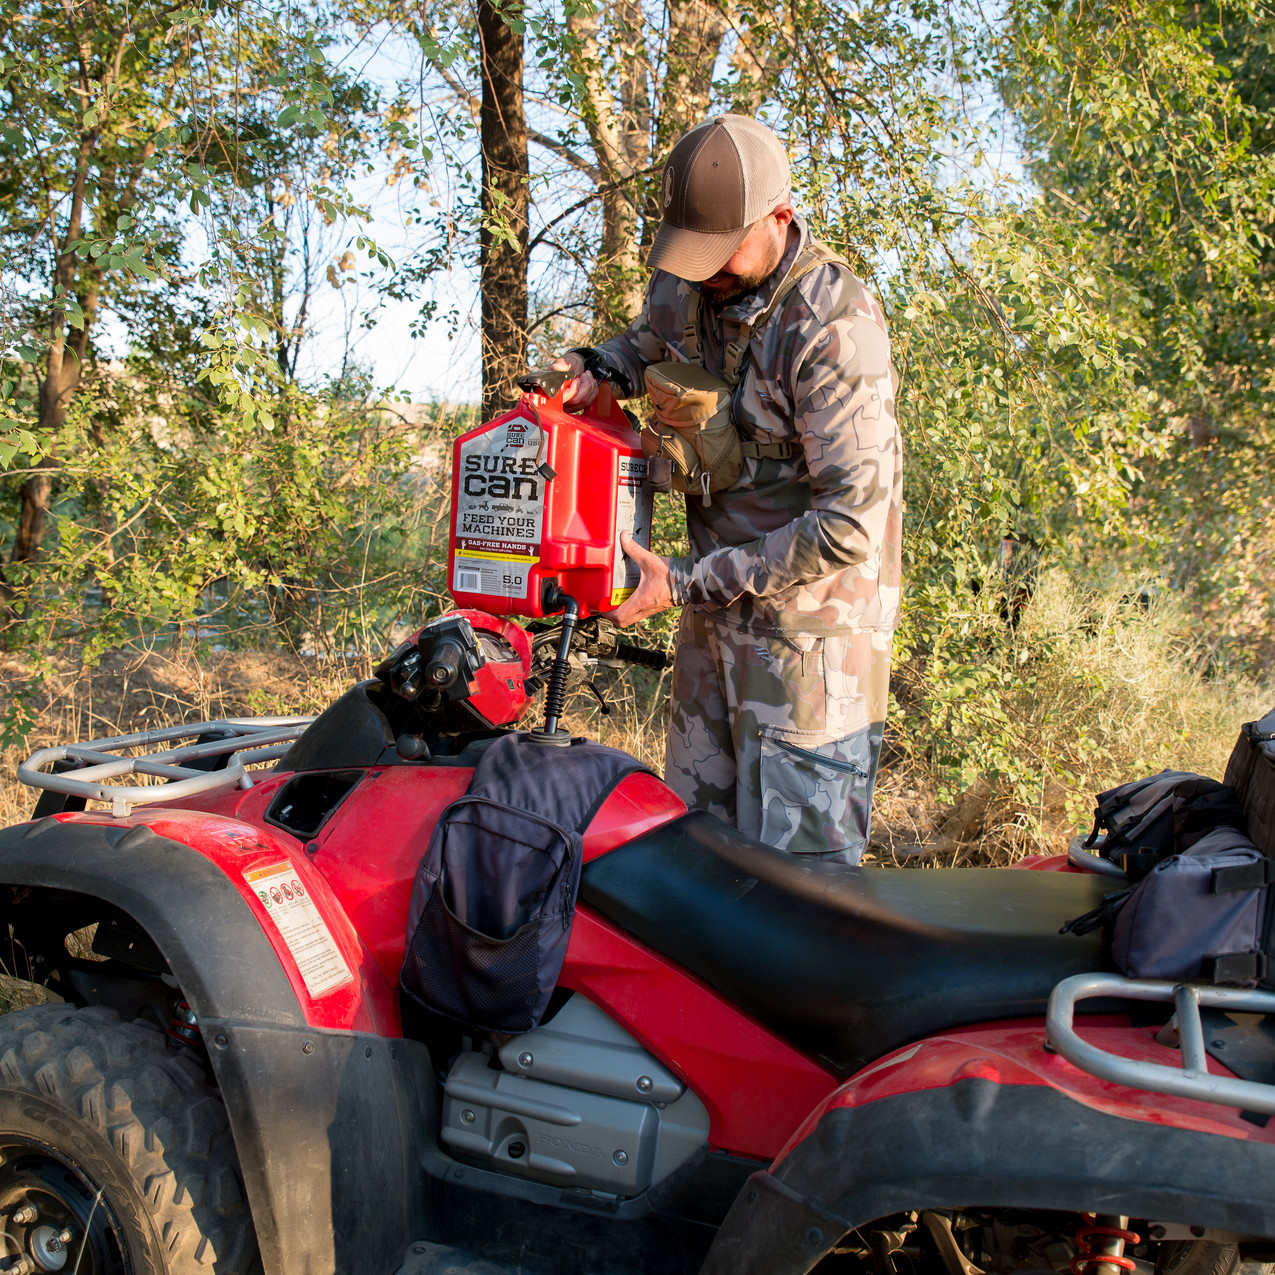 The SureCan allows  you to place it on top of the handlebars of your ATV and rotate the spout 180 degrees down into the tank you are filling so that you won't have to hold the weight of your gas can while you feed it.